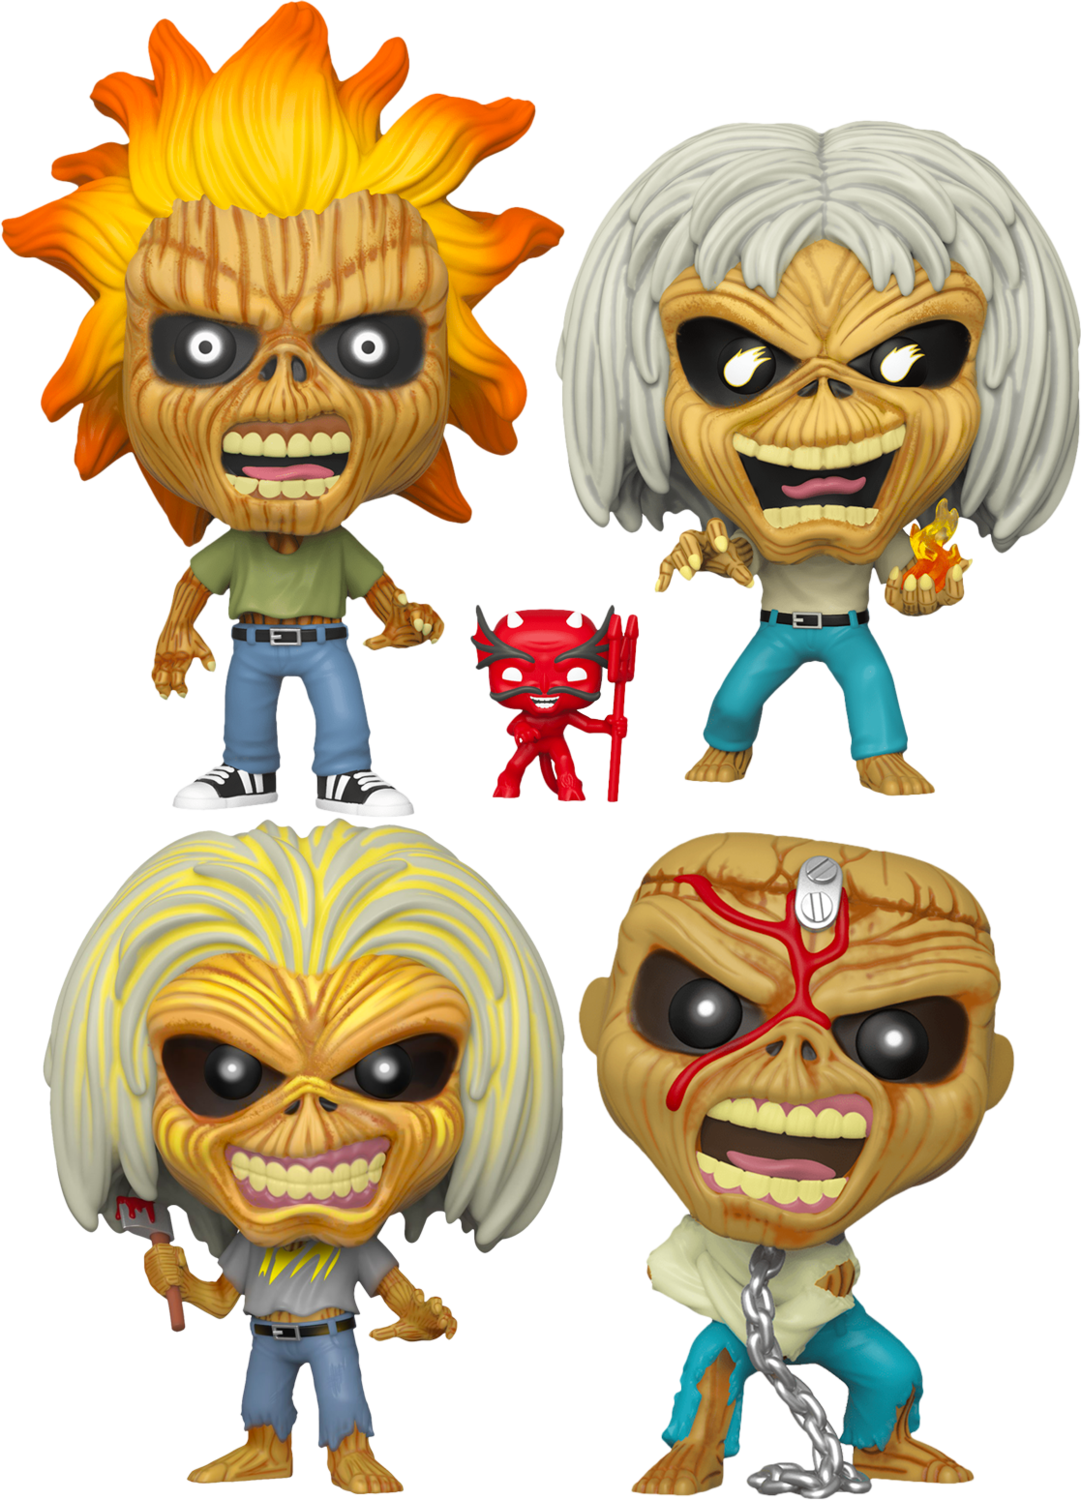 Iron Maiden - The Number of the Pop! Vinyl